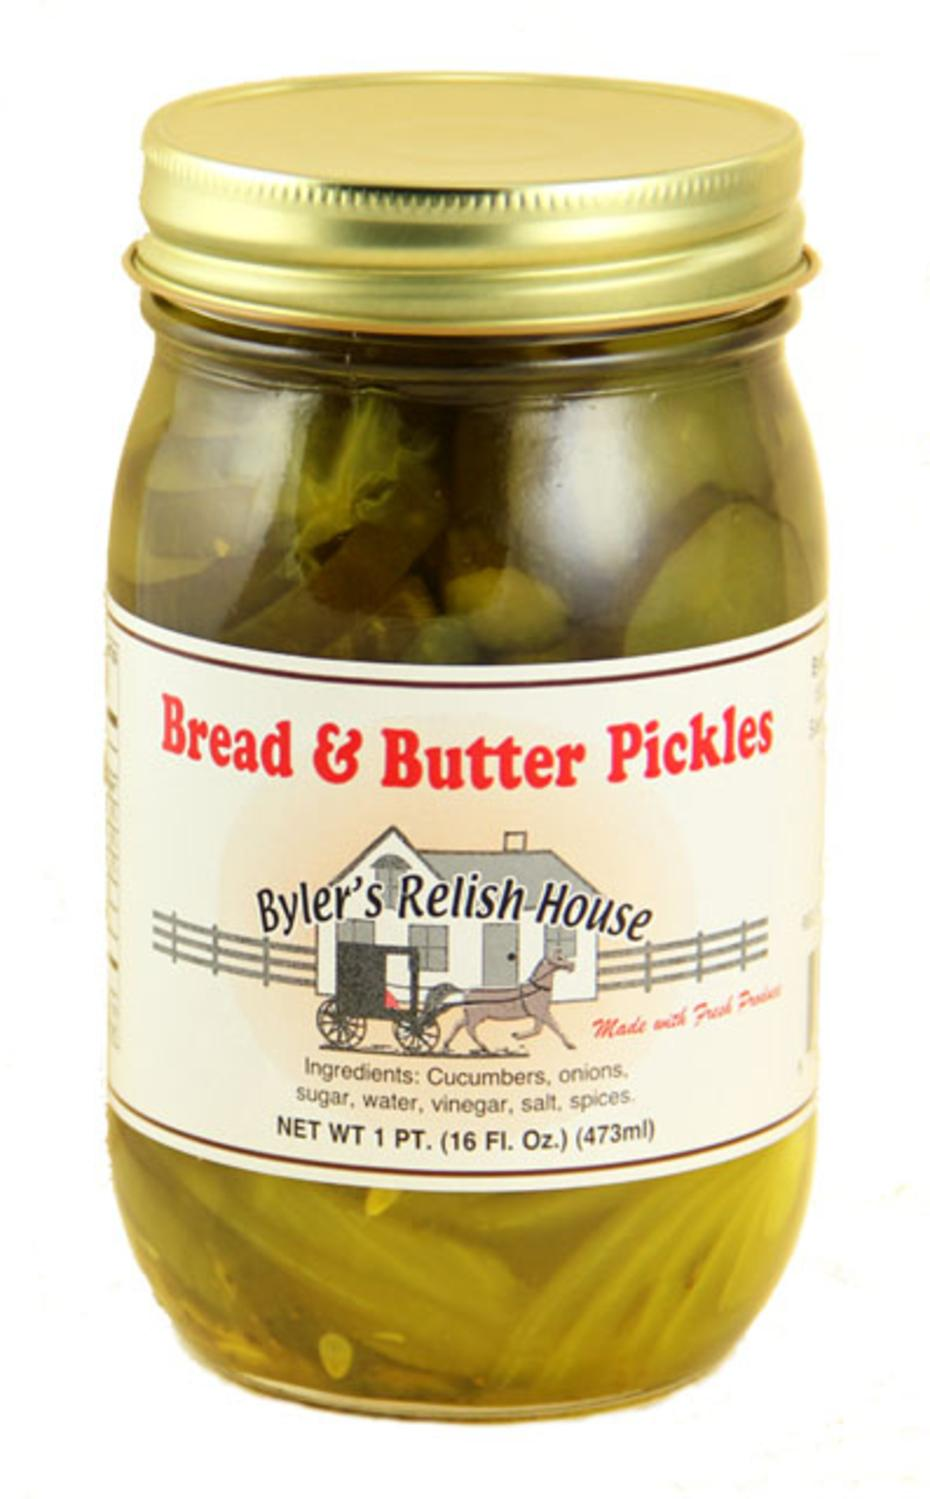 Byler's Relish House Homemade Amish Country Bread & Butter Pickles 16 oz. by Byler's Relish House